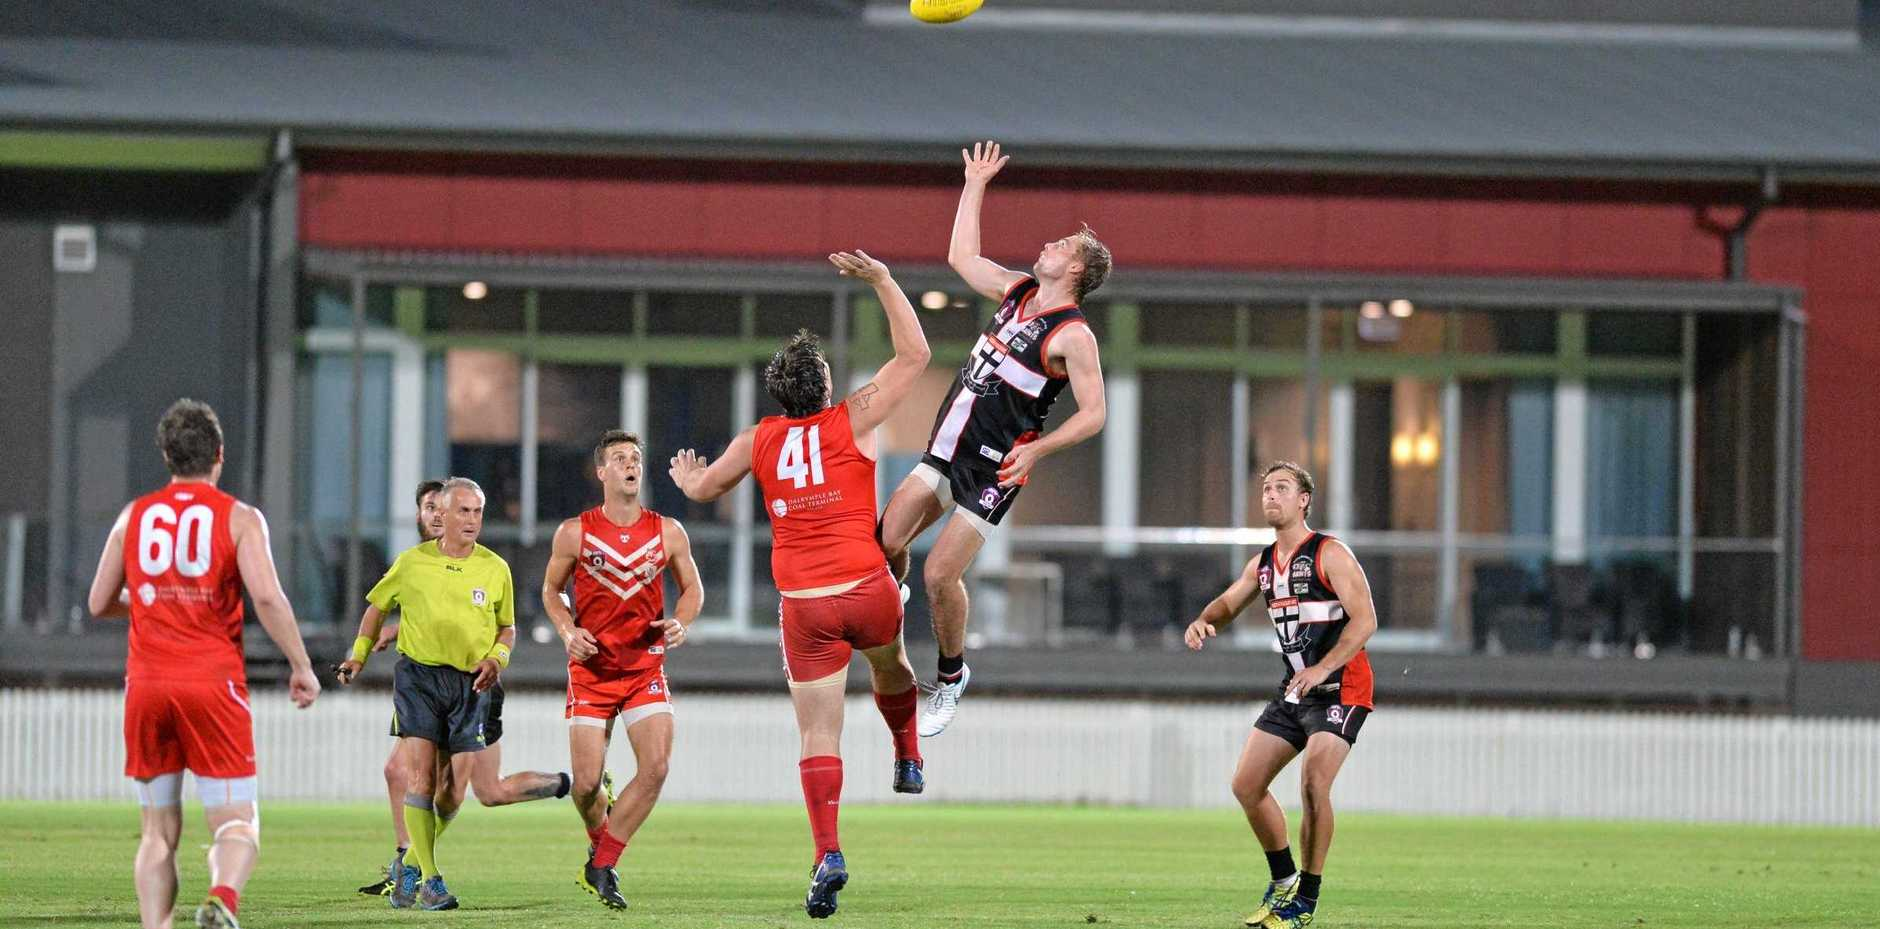 REDEMPTION: The Eastern Swans and North Mackay Saints meet in the finals once again, after the Swans knocked their rivals out of contention last season.